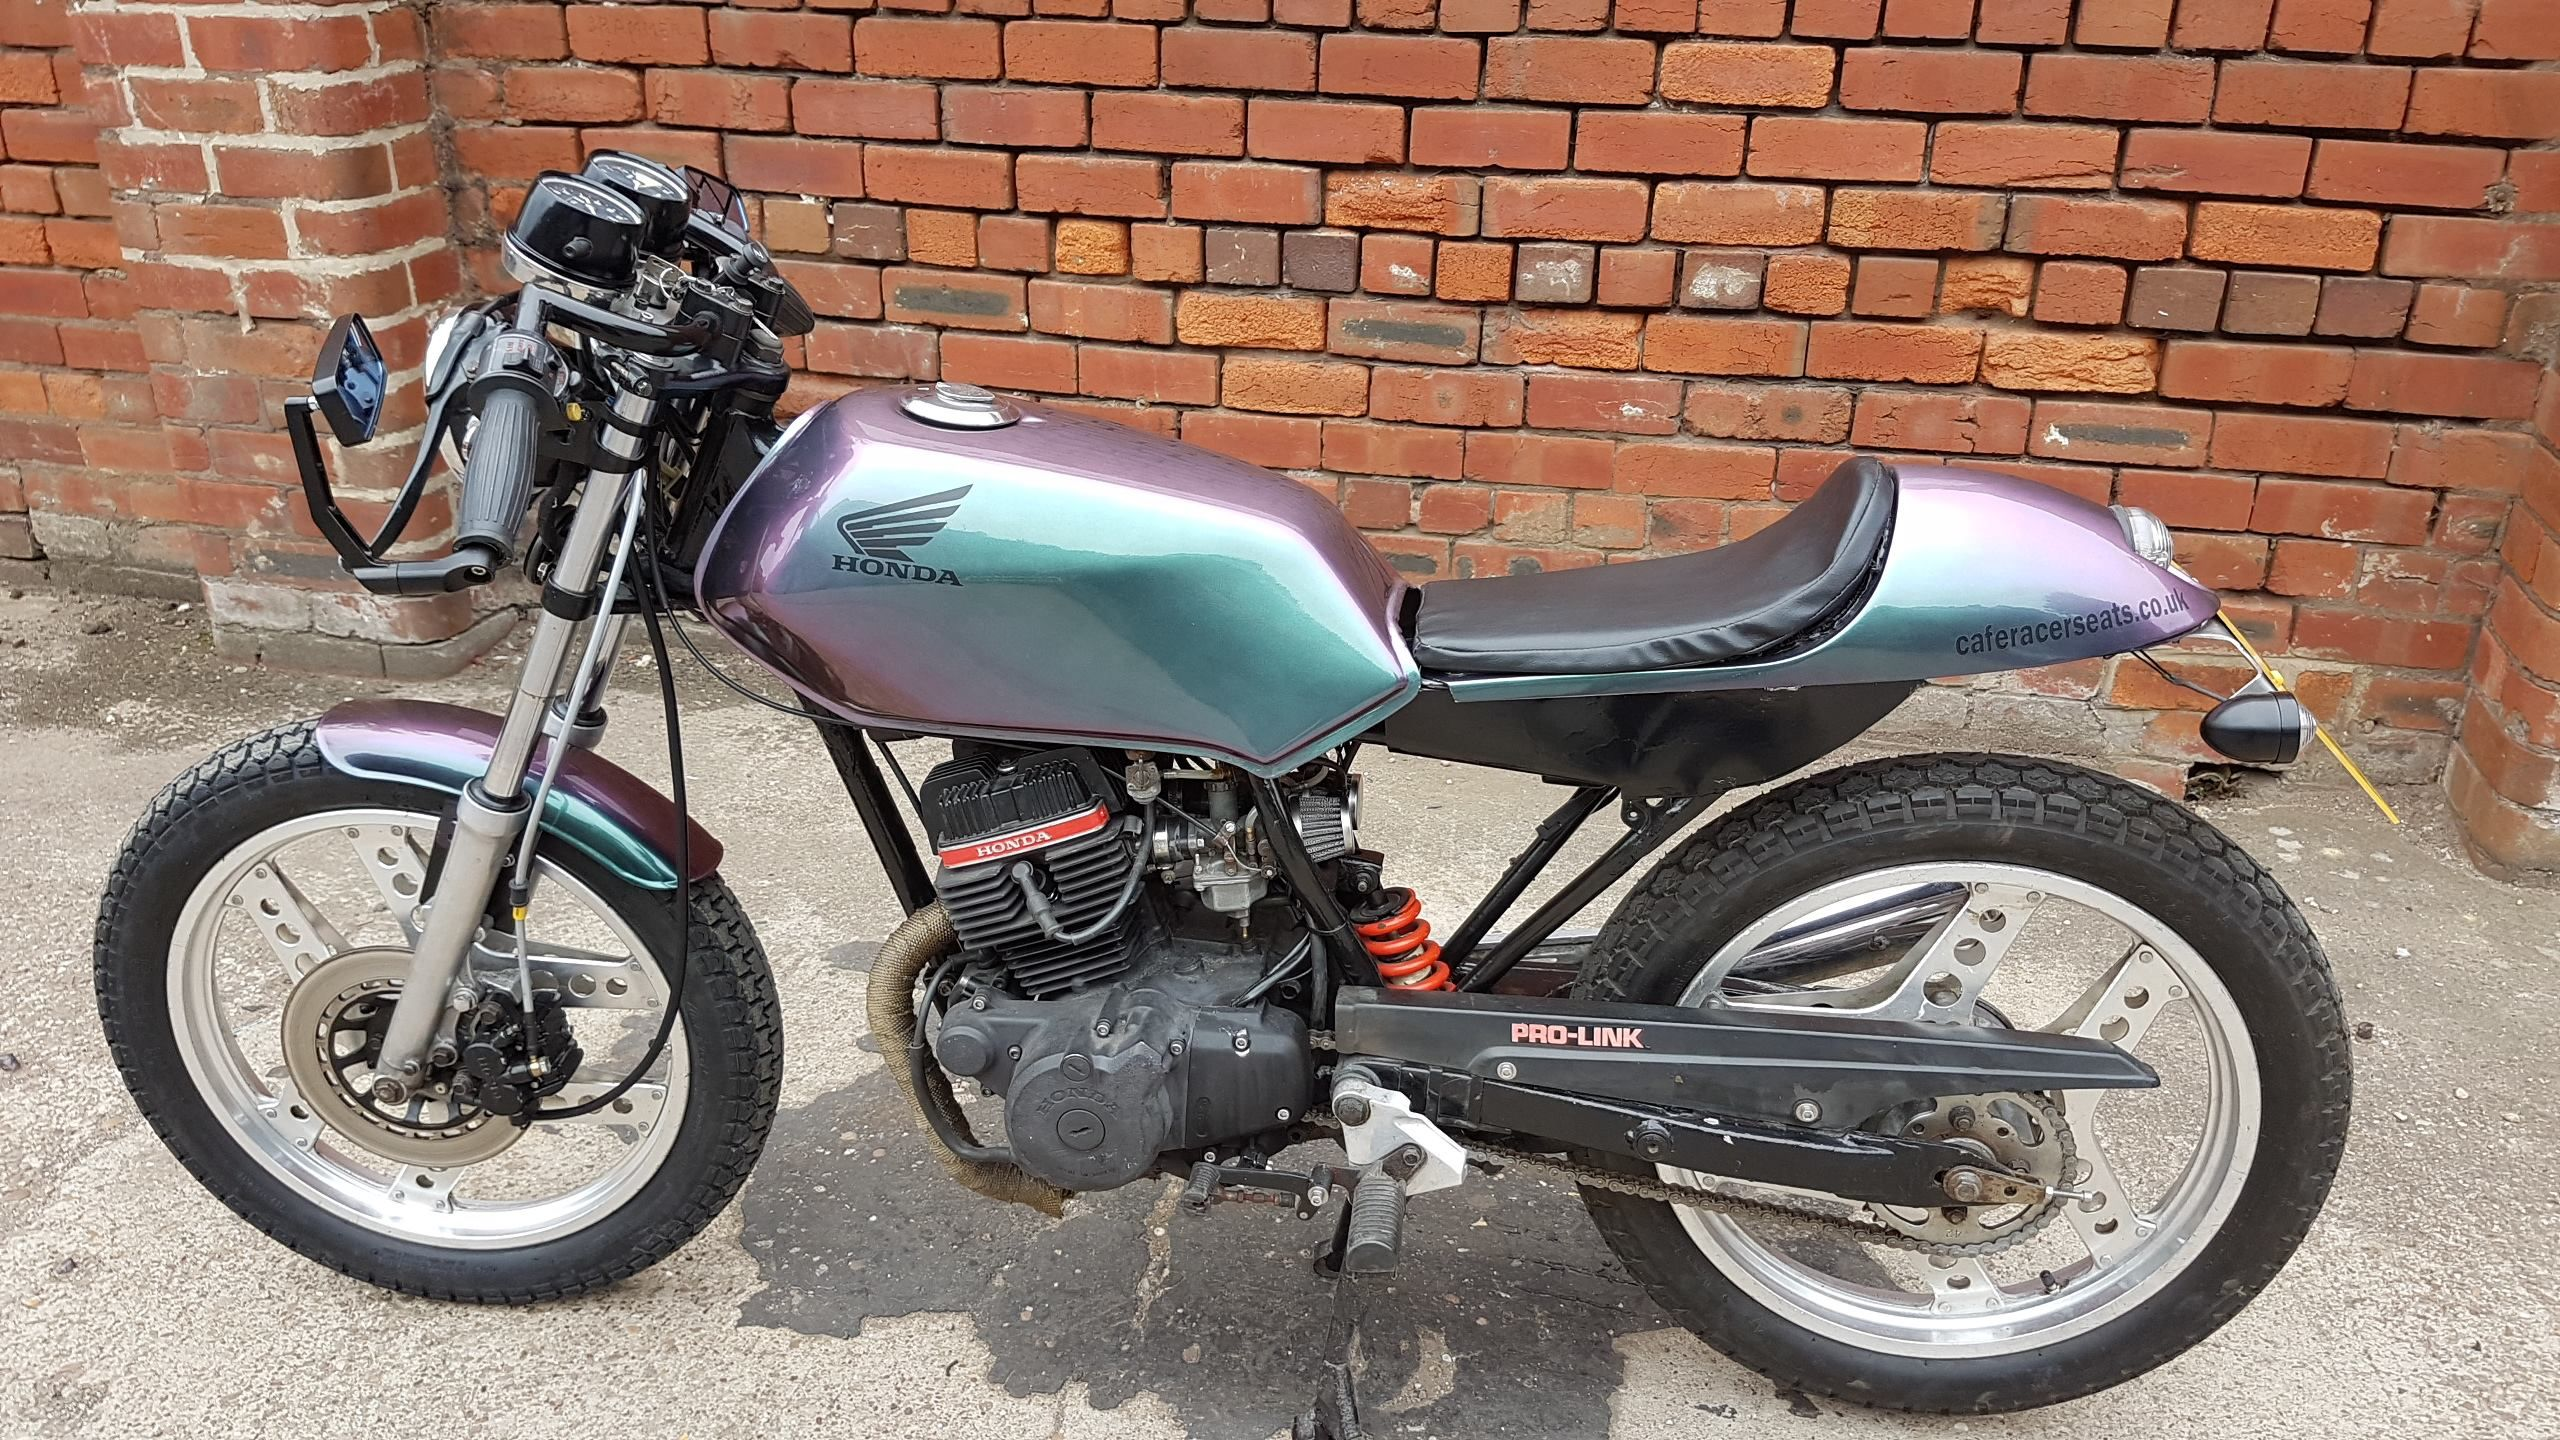 honda cb125 superdream cafe racer finished in flip paint by complete cafe racer [ 2560 x 1440 Pixel ]